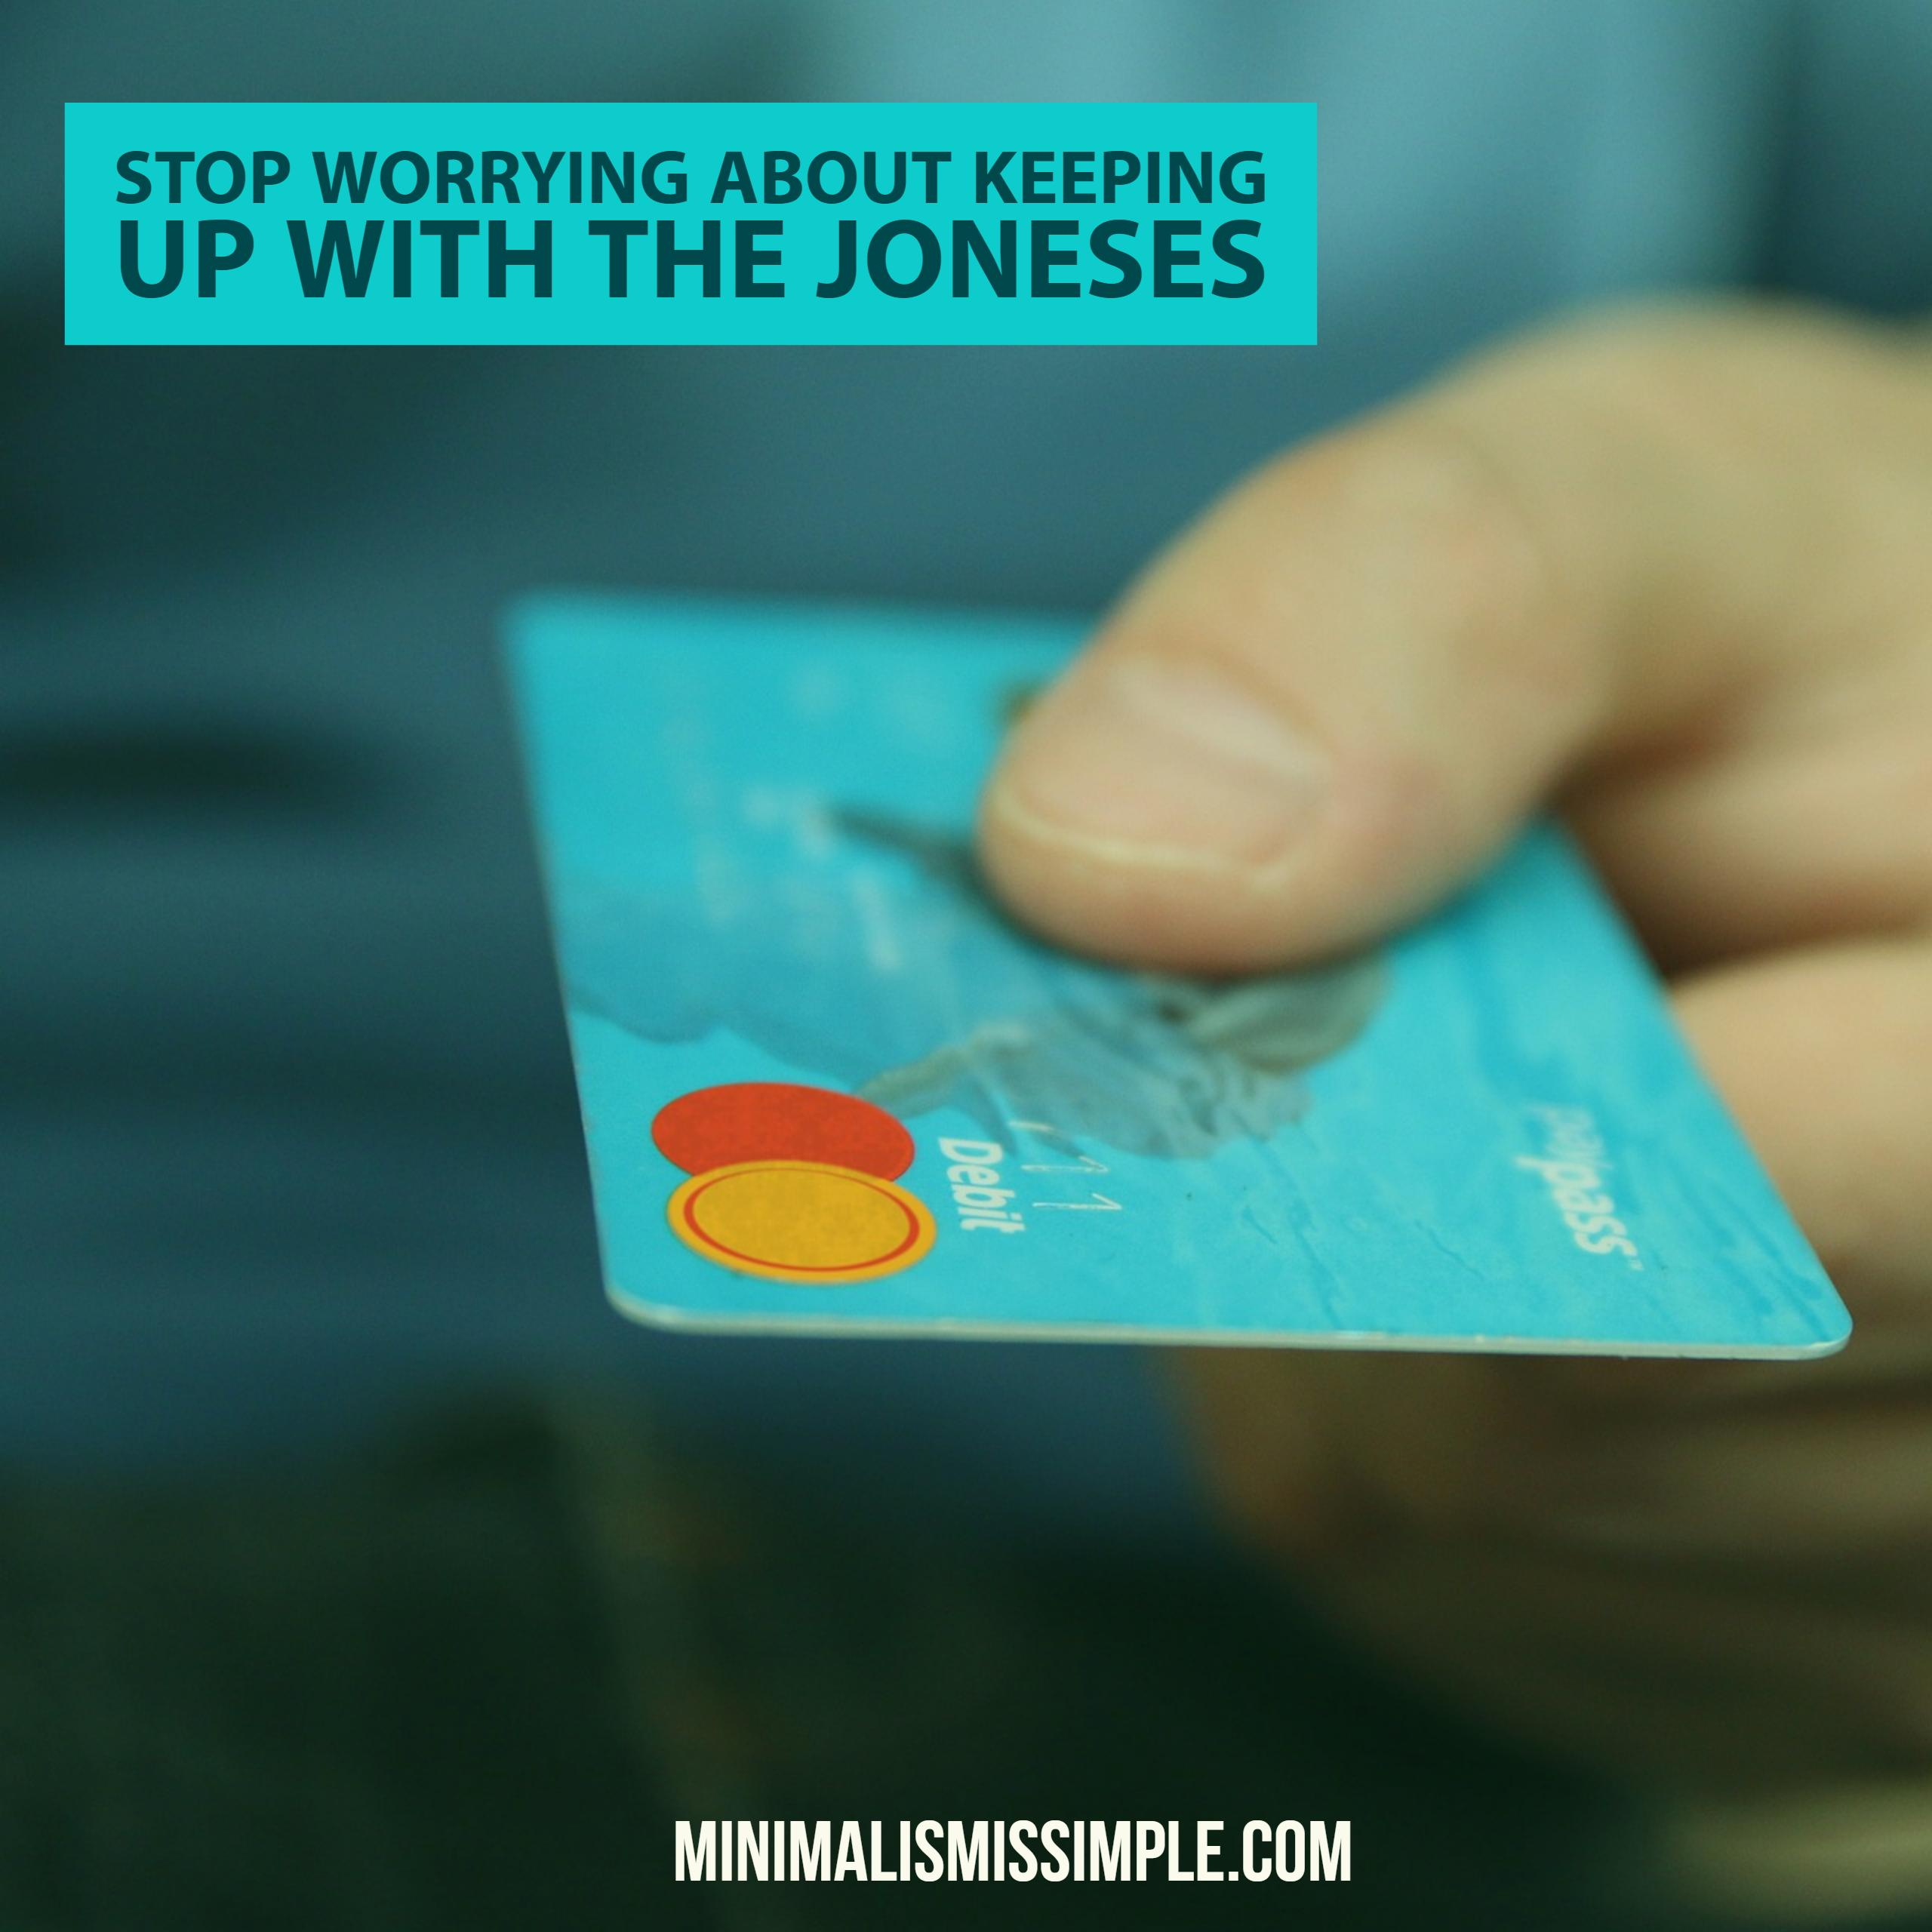 stop worrying about the joneses minimalismissimple